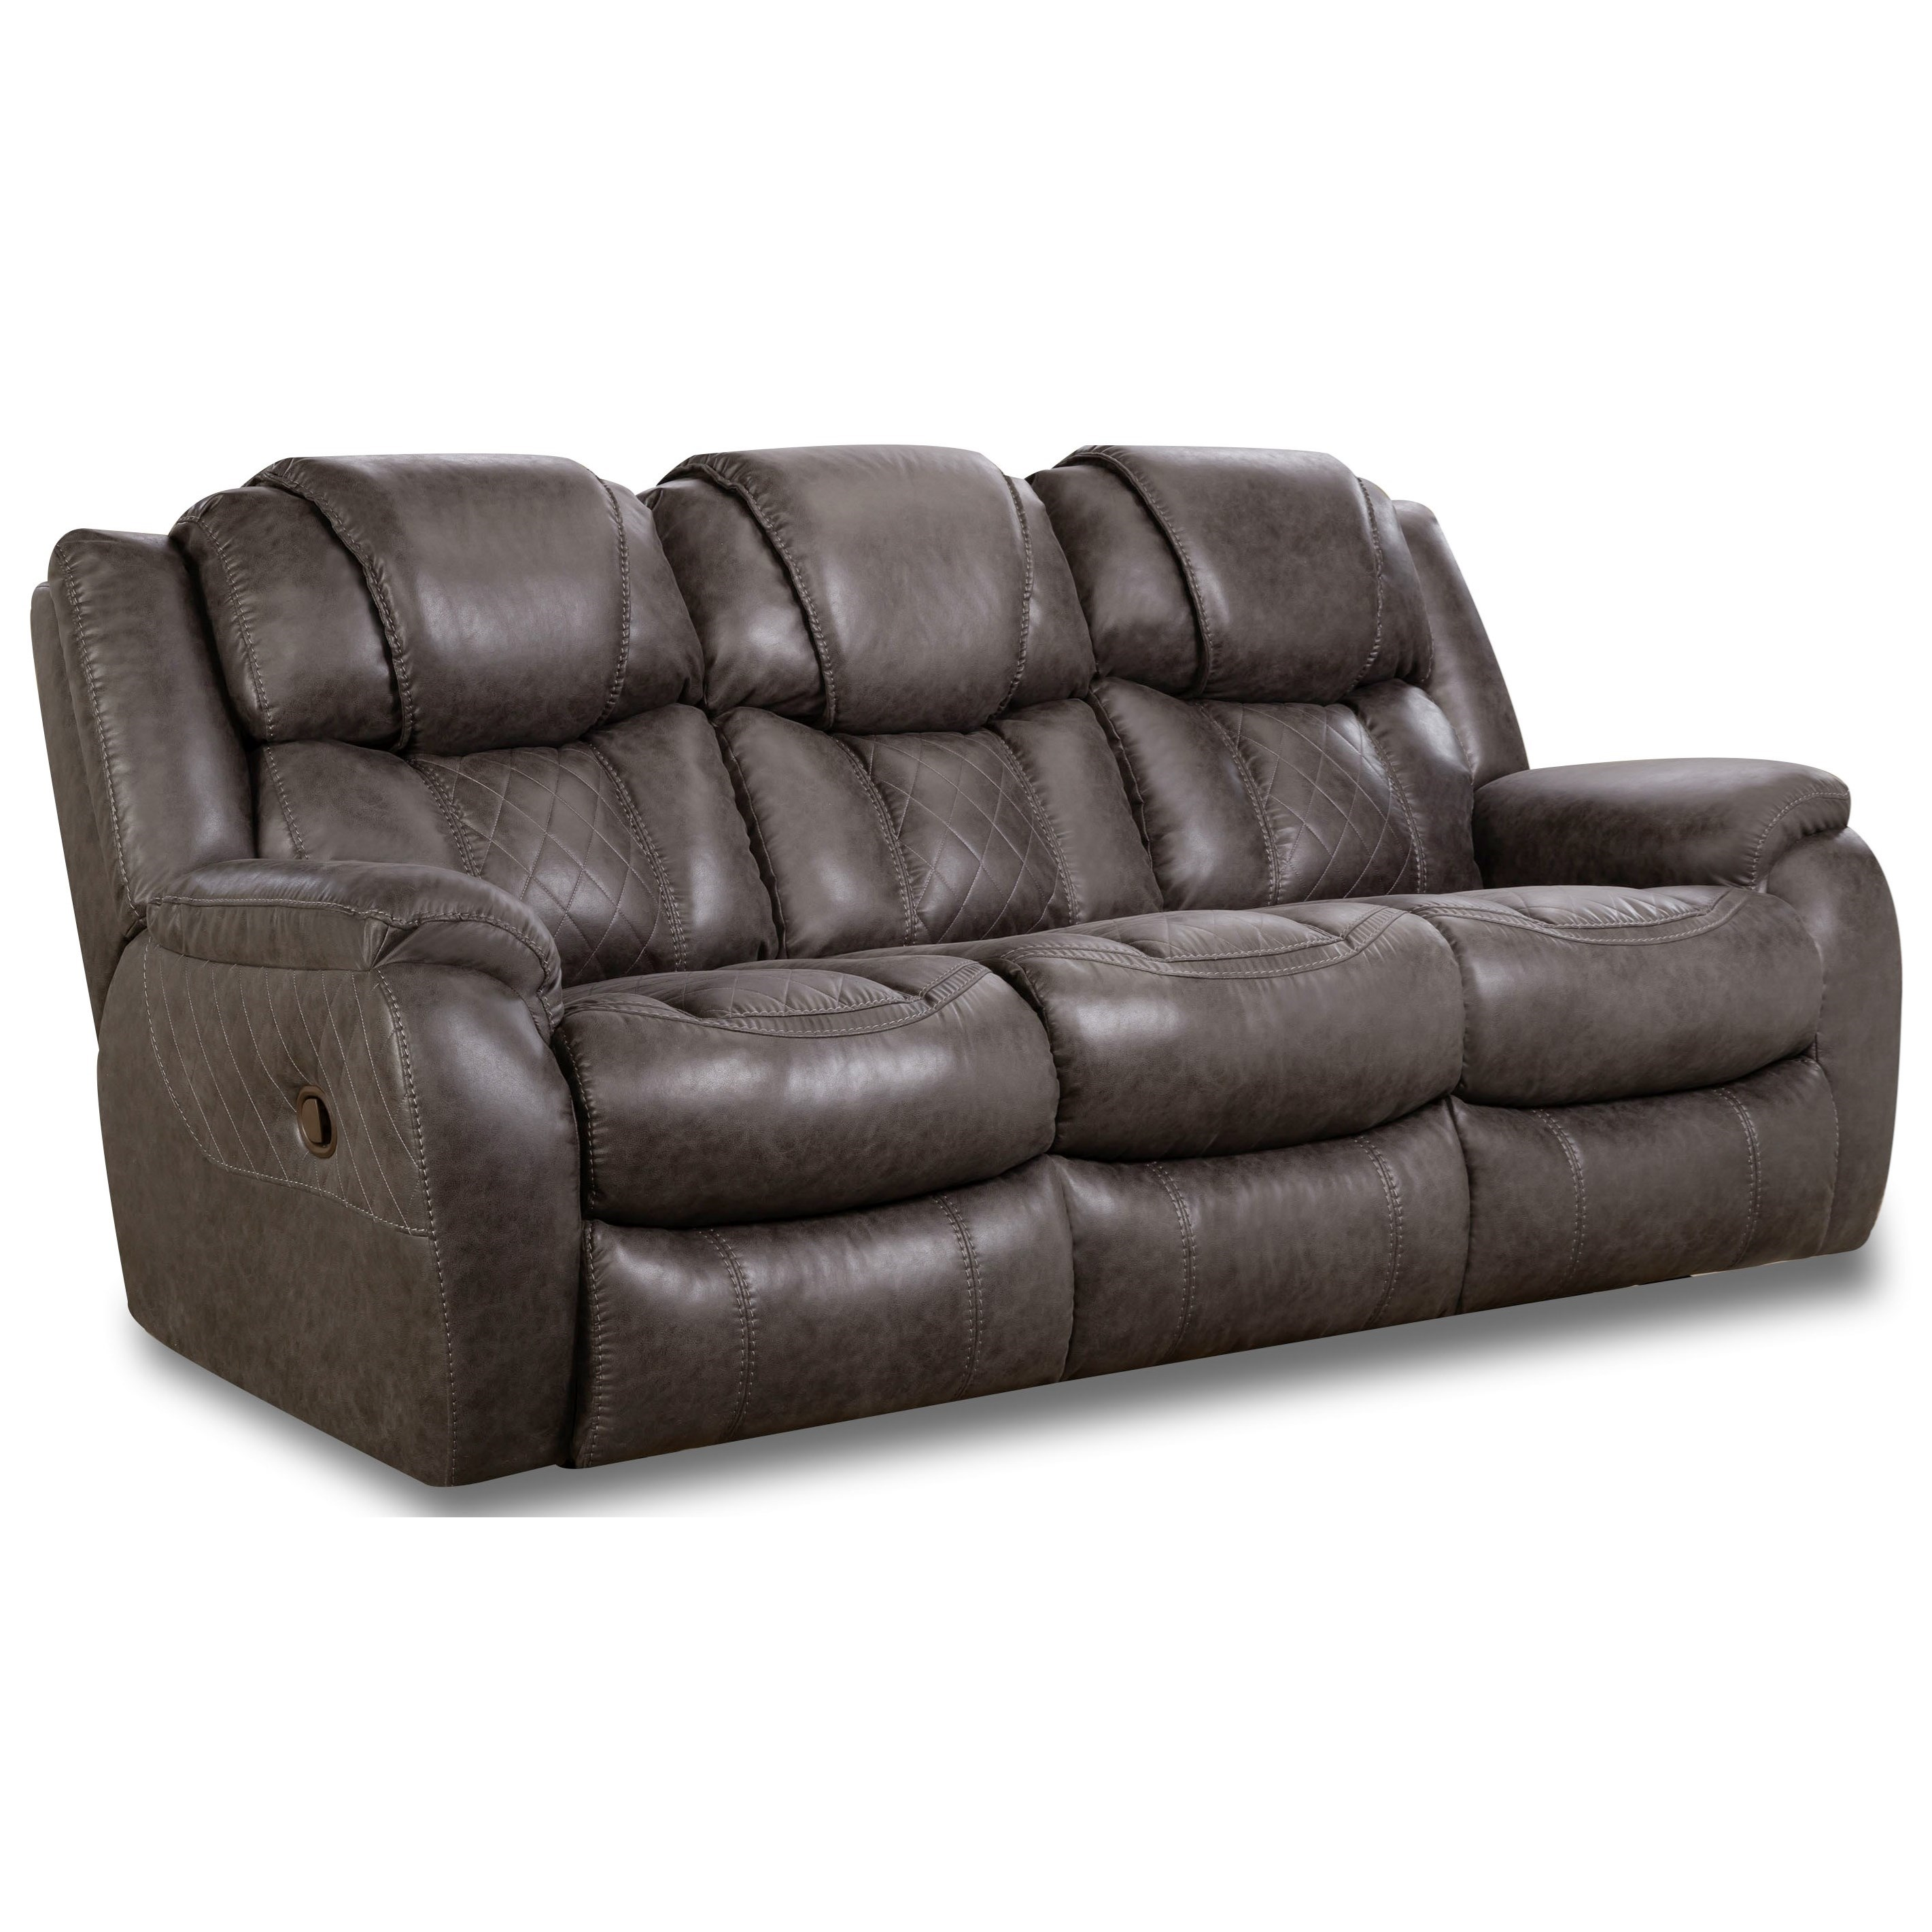 Homestretch 182 Casual Style Double Reclining Sofa Vandrie Home Furnishings Reclining Sofas